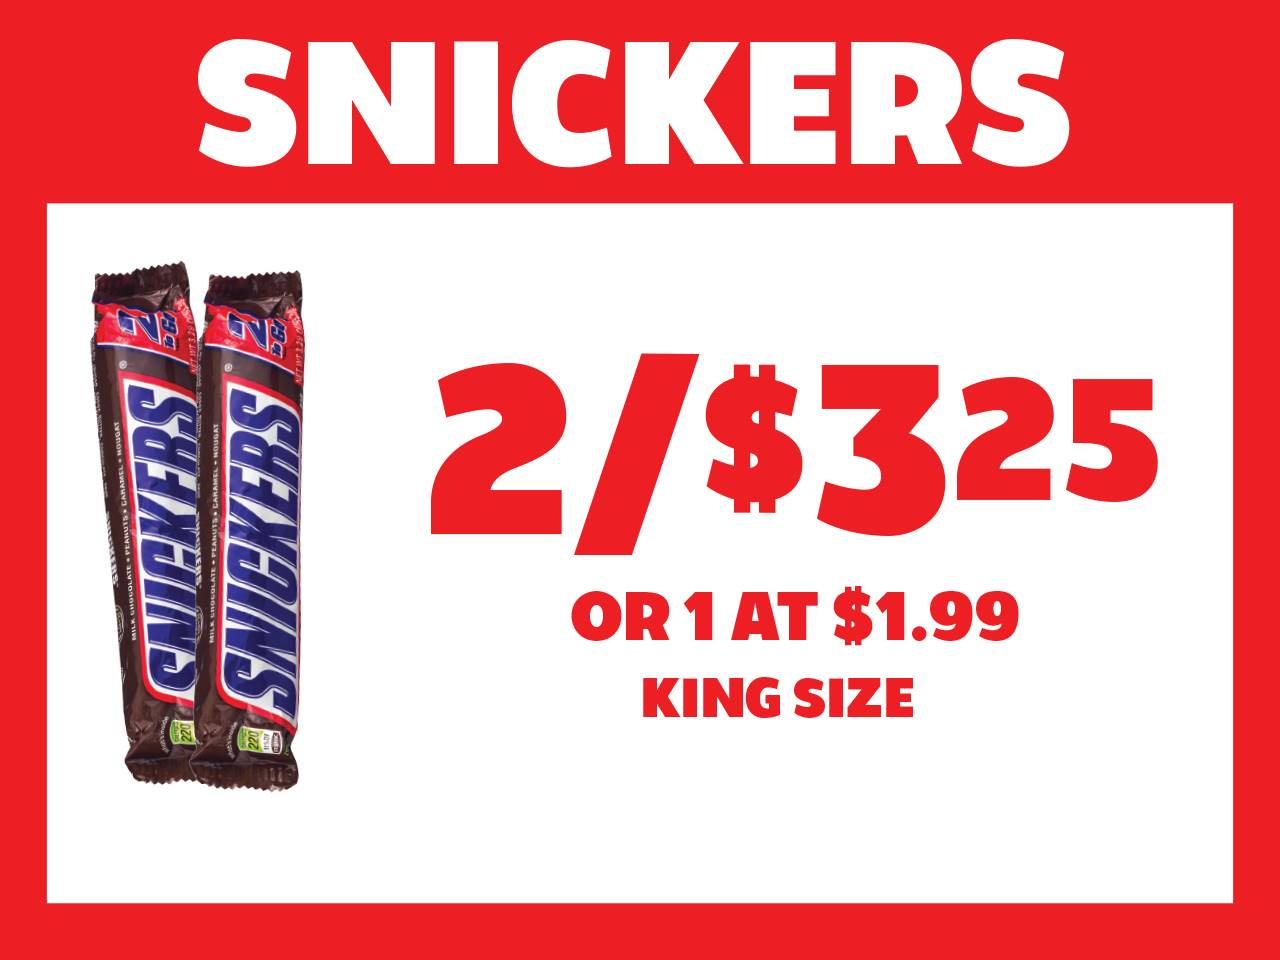 King Size Snickers 2 for $3.25 or 1 at $1.99